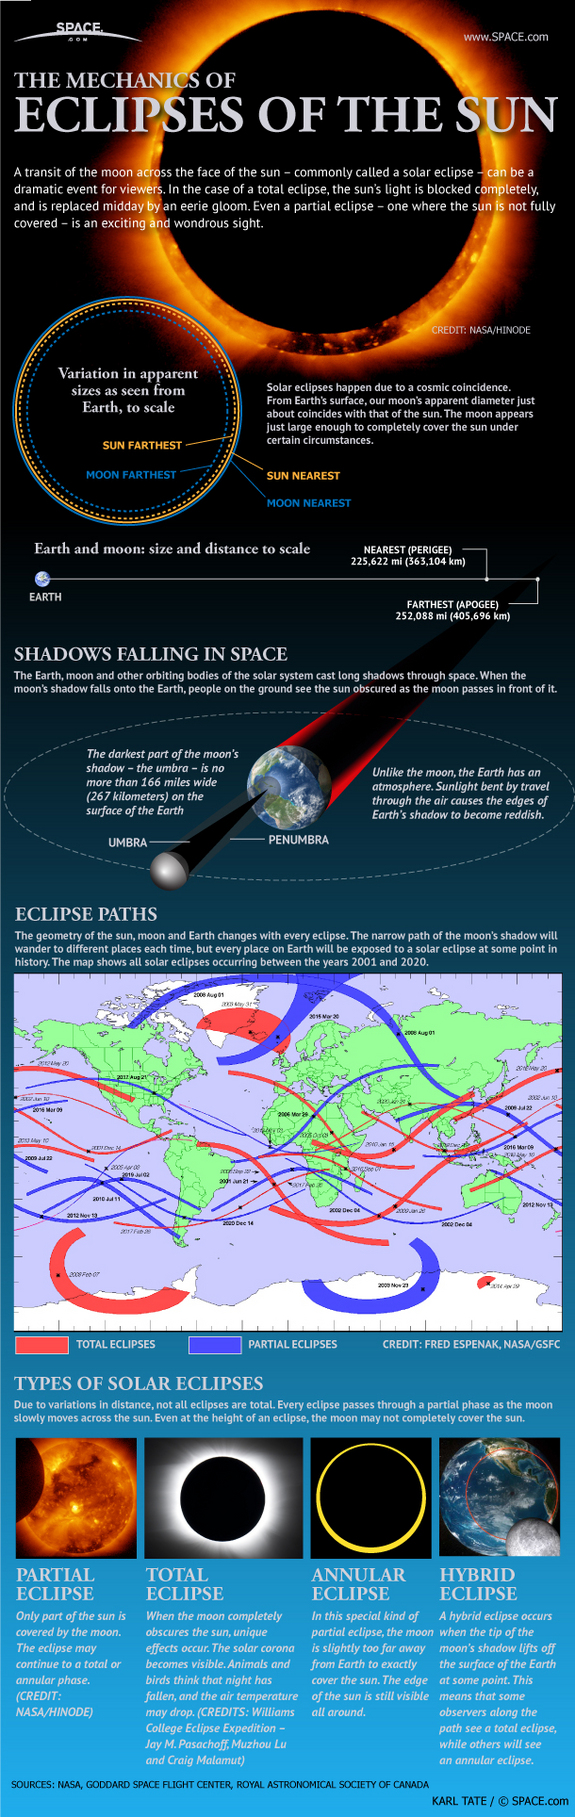 solar-eclipses-an-observers-guide_509df8be2c750